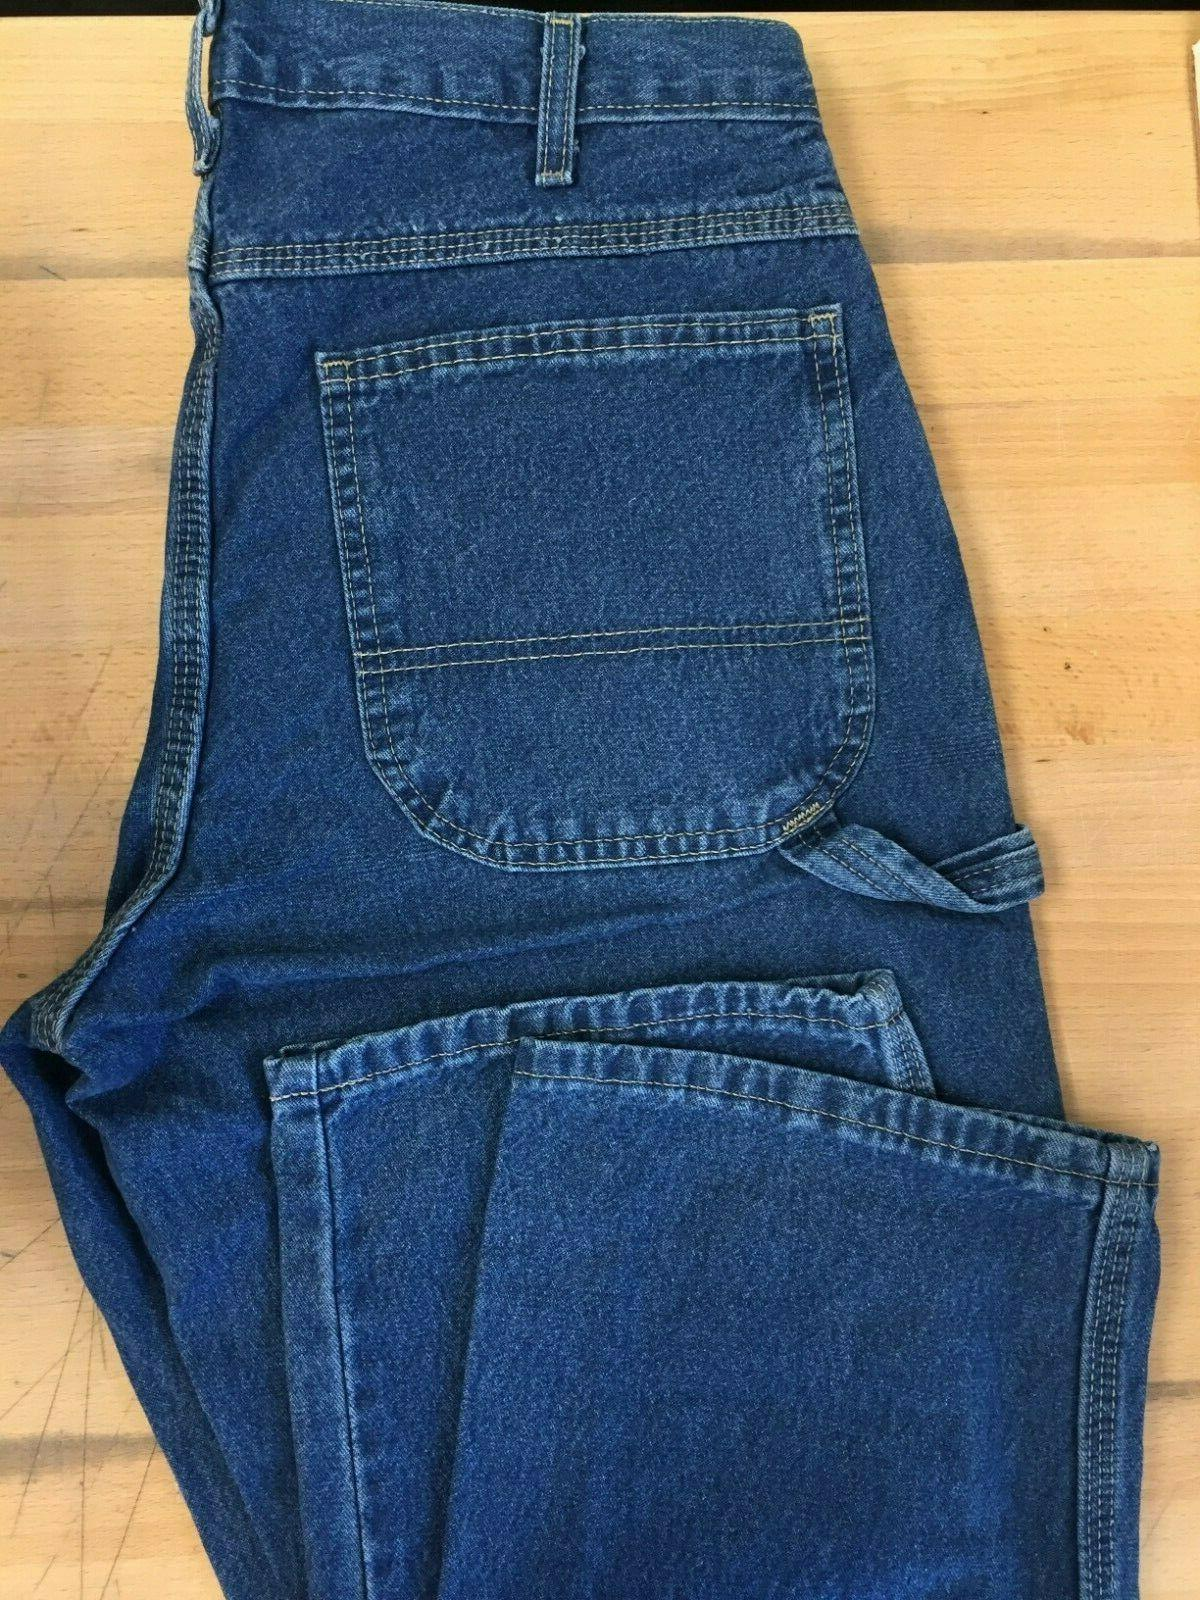 Dickie's Men's Relaxed Straight Fit Carpenter Irregular* Jeans